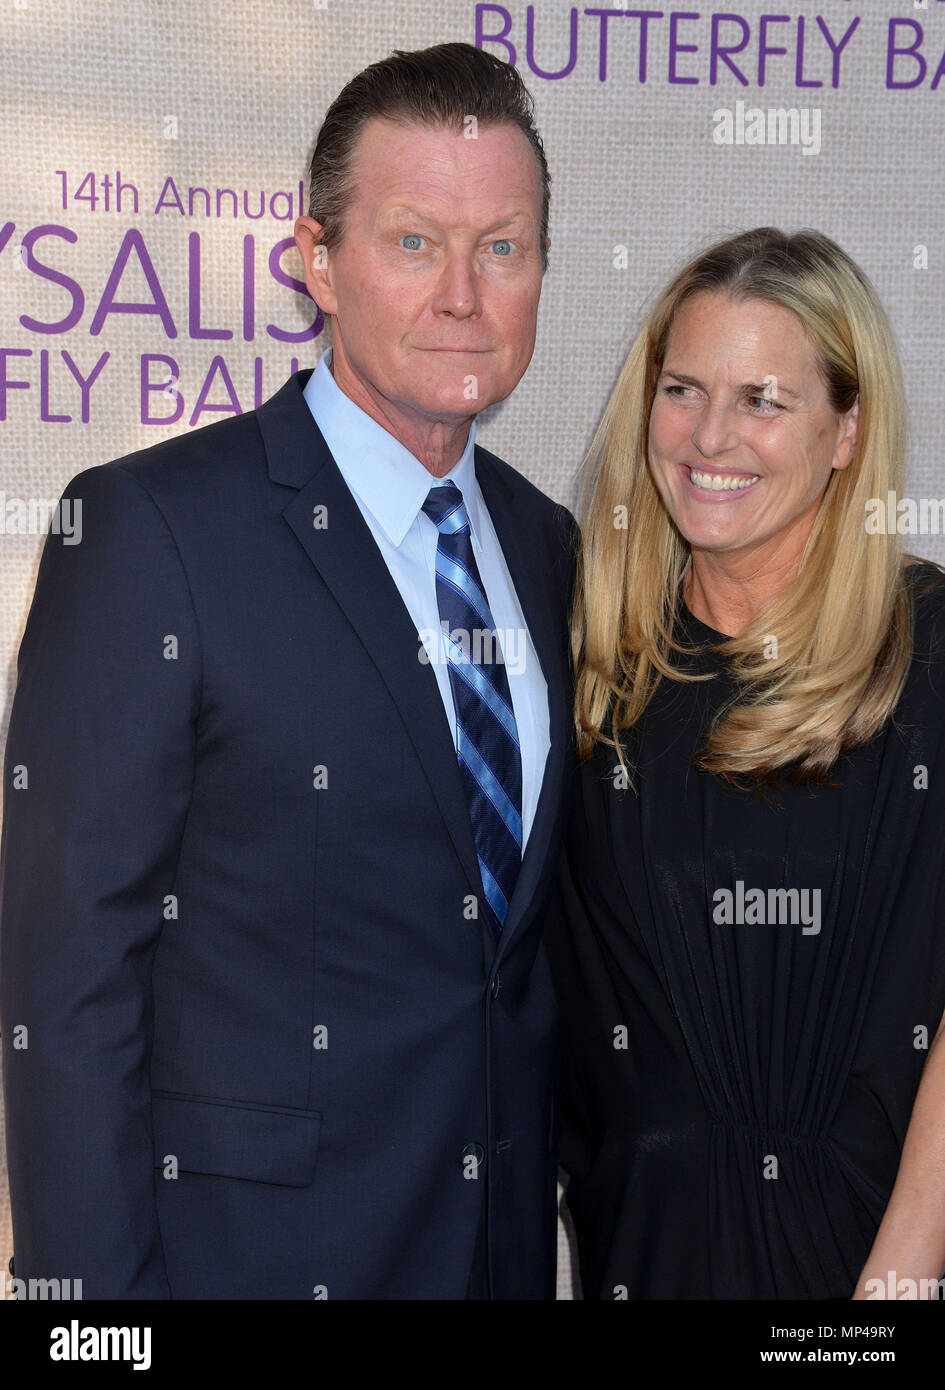 Robert Patrick Barbara Patrick 037 At The 14th Annual